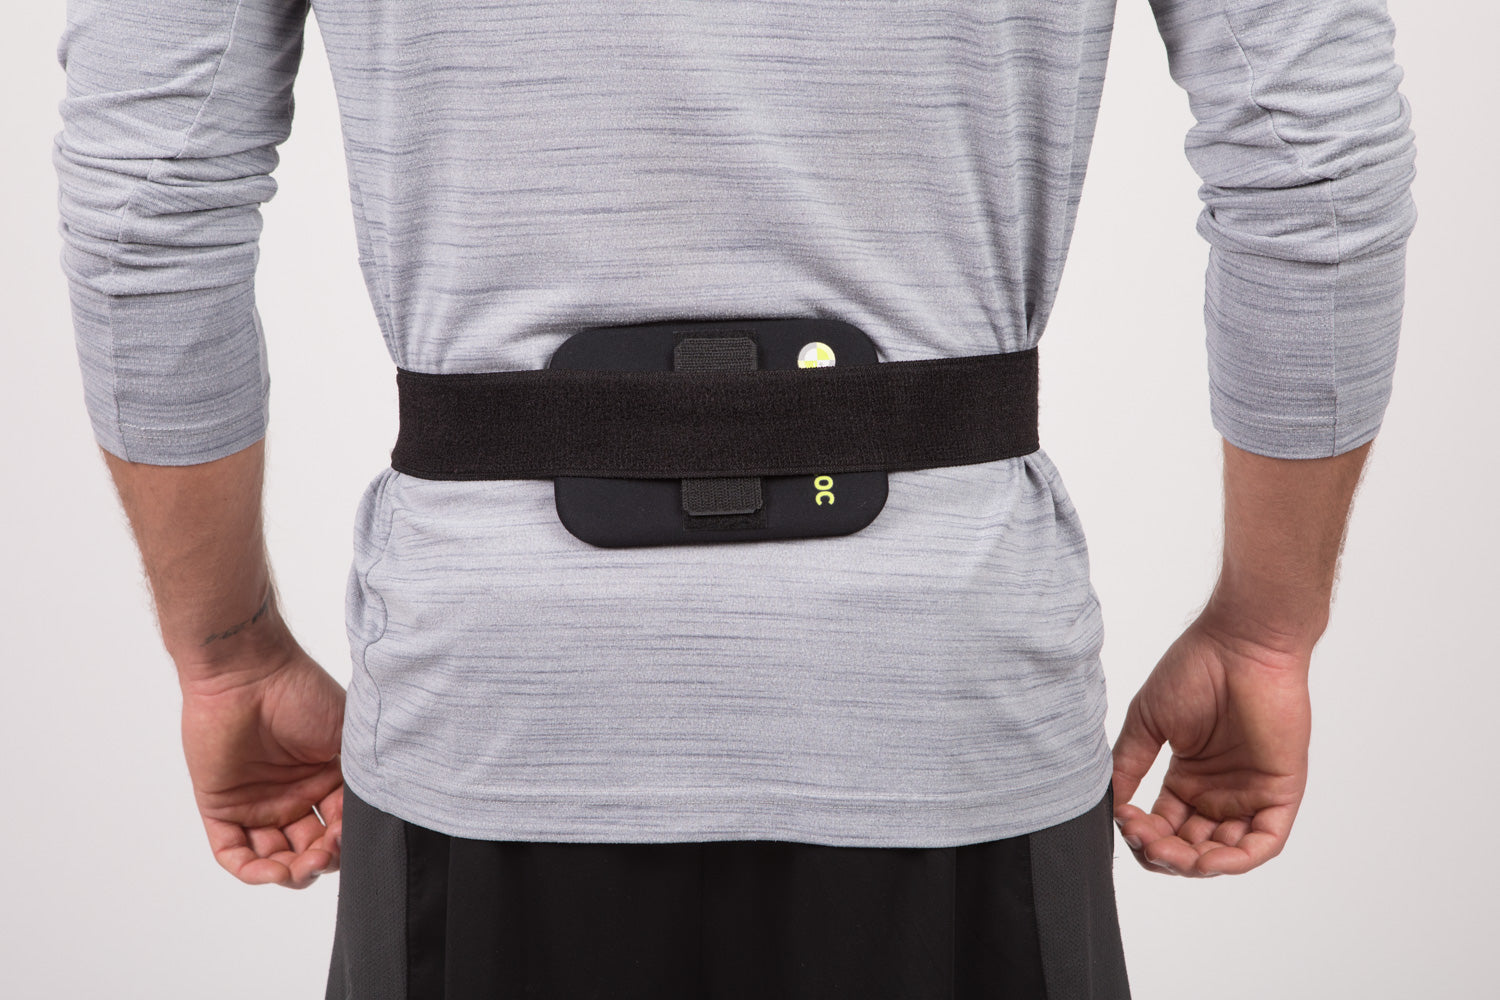 Quadrabloc is a safe alternative for lower back pain relief